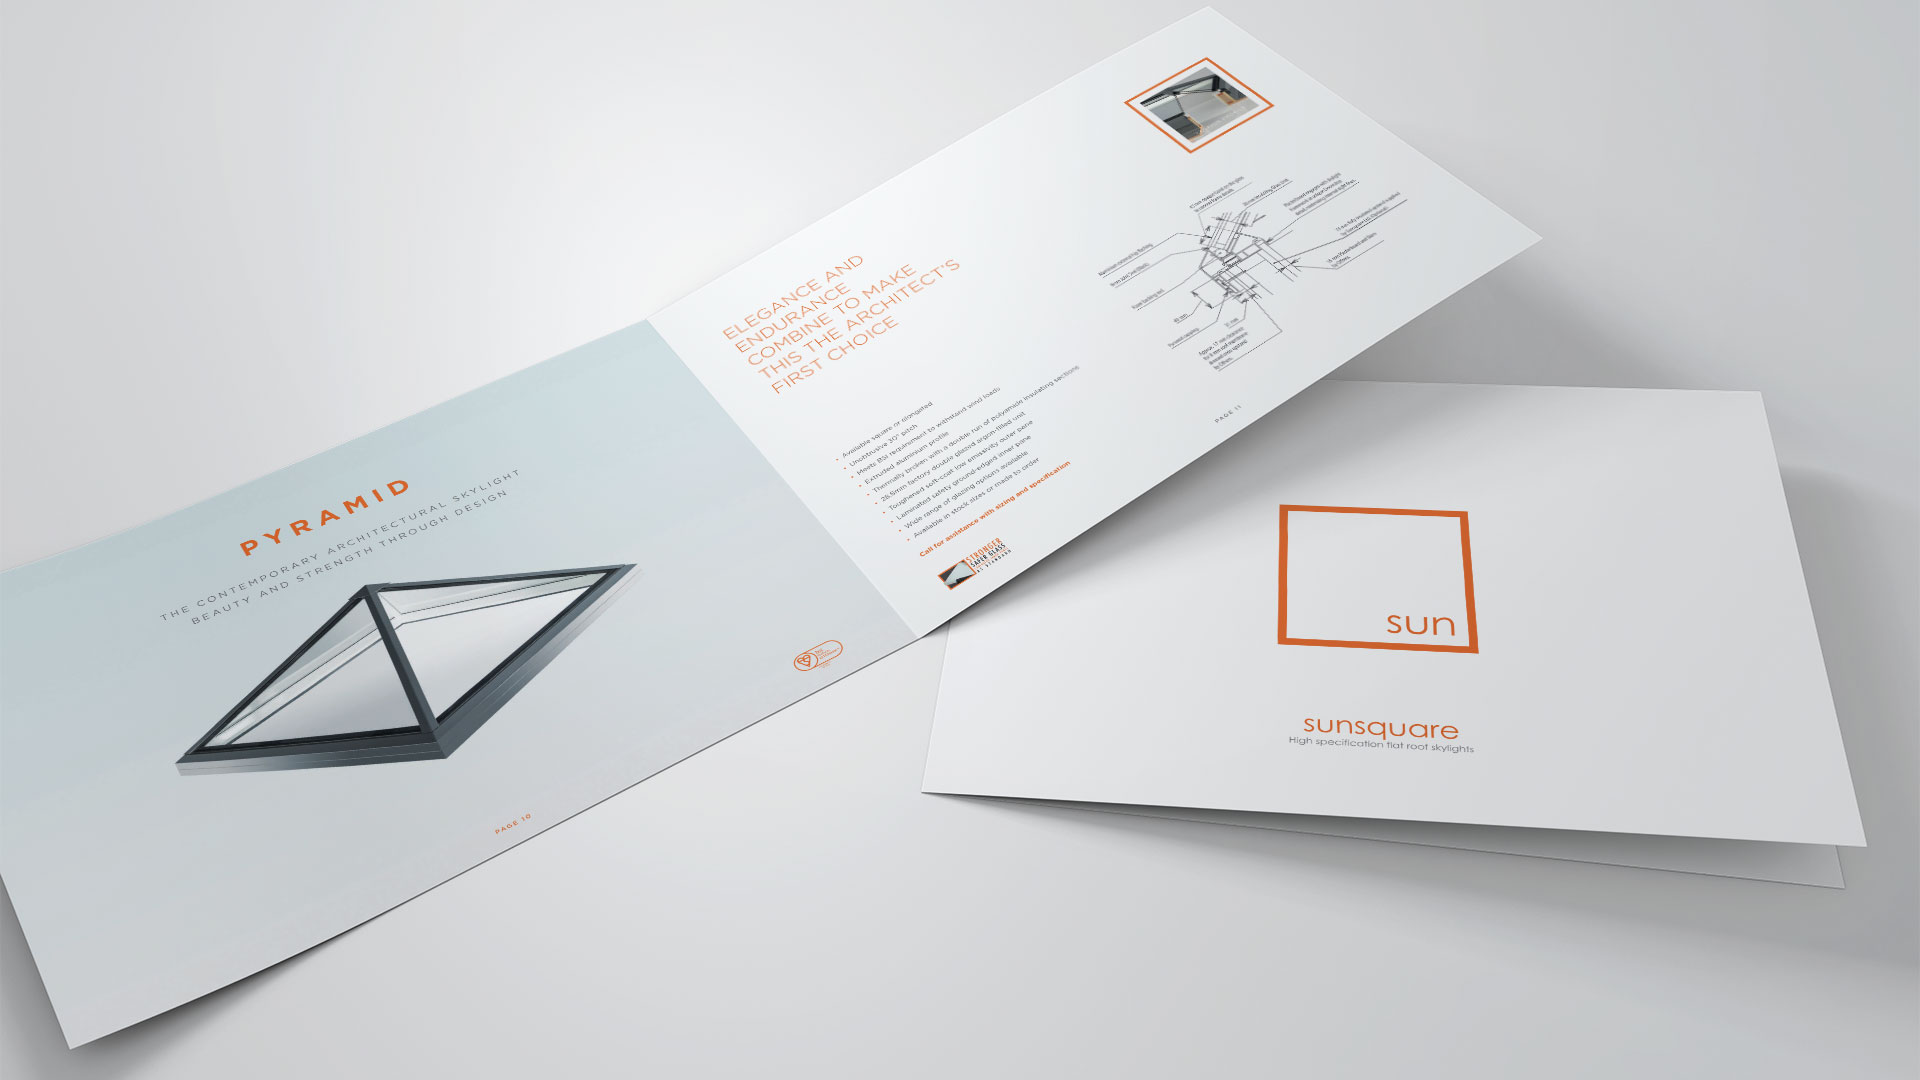 Sun Square A4 Brochure mock-up print design